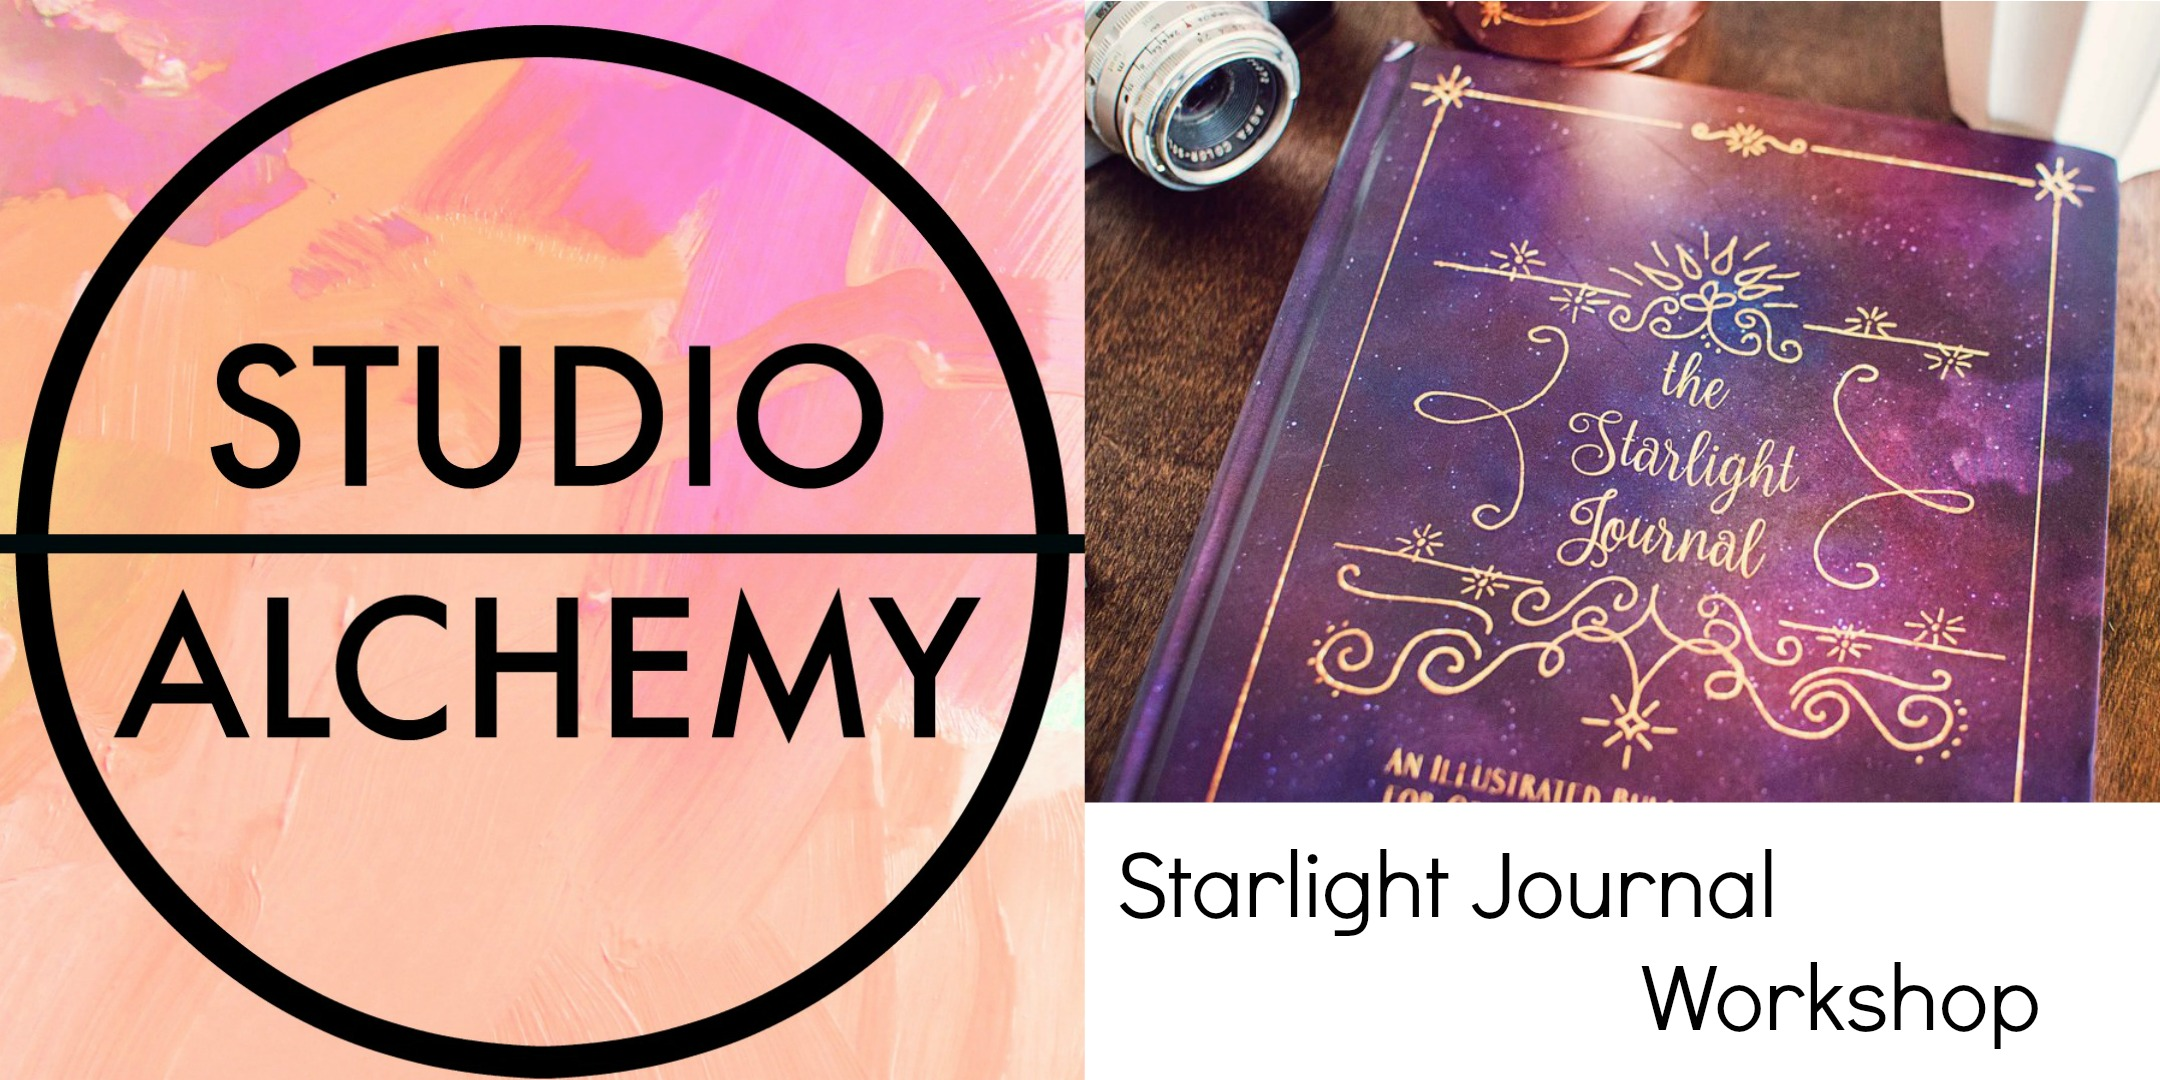 Starlight Journal Workshop.jpg